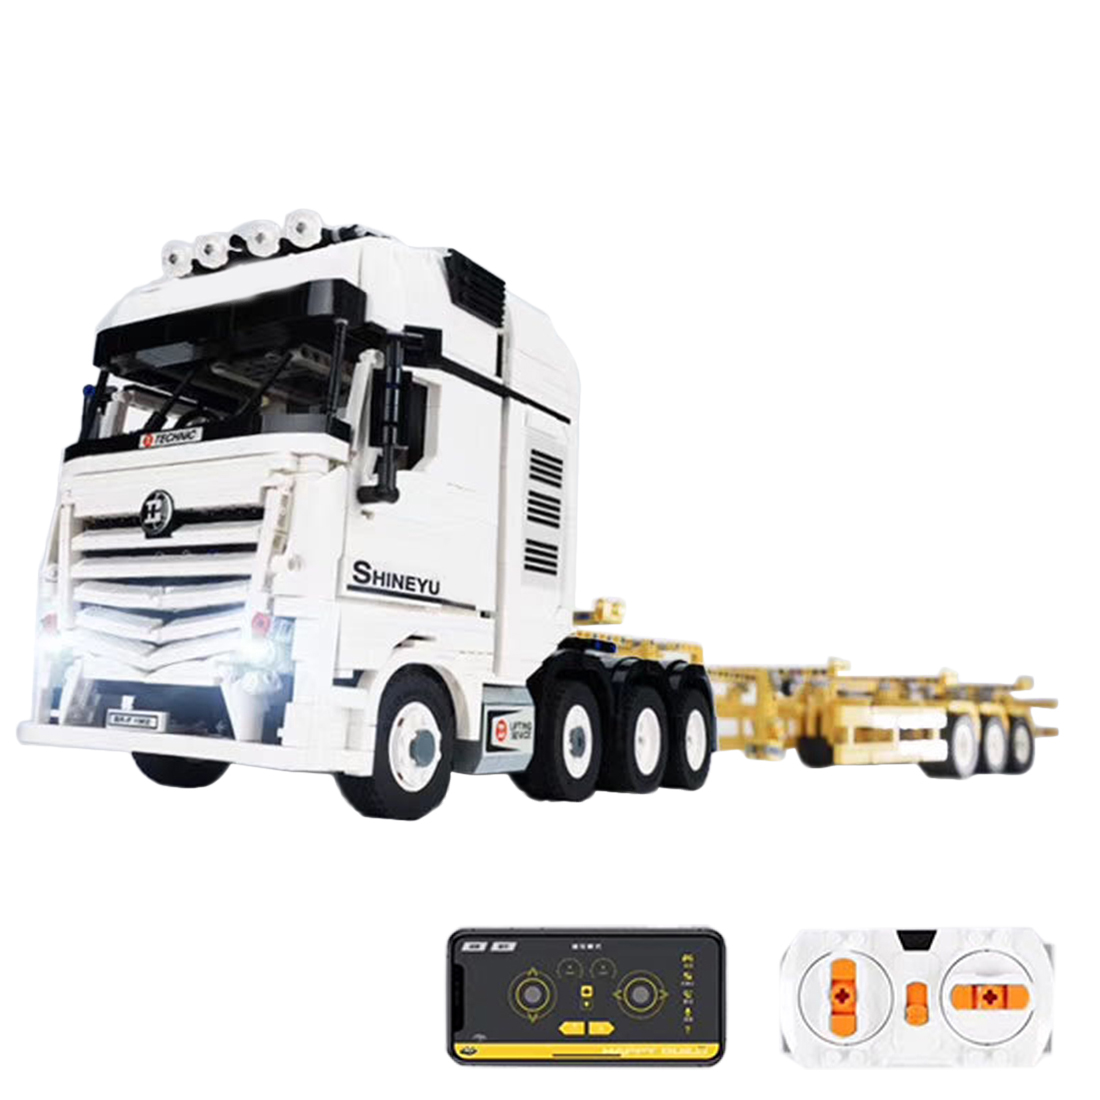 2681Pcs Moc Small Particles Building Blocks 2.4G Dual RC 4CH Truck Assembly DIY Trailer Model As Gift And Collection